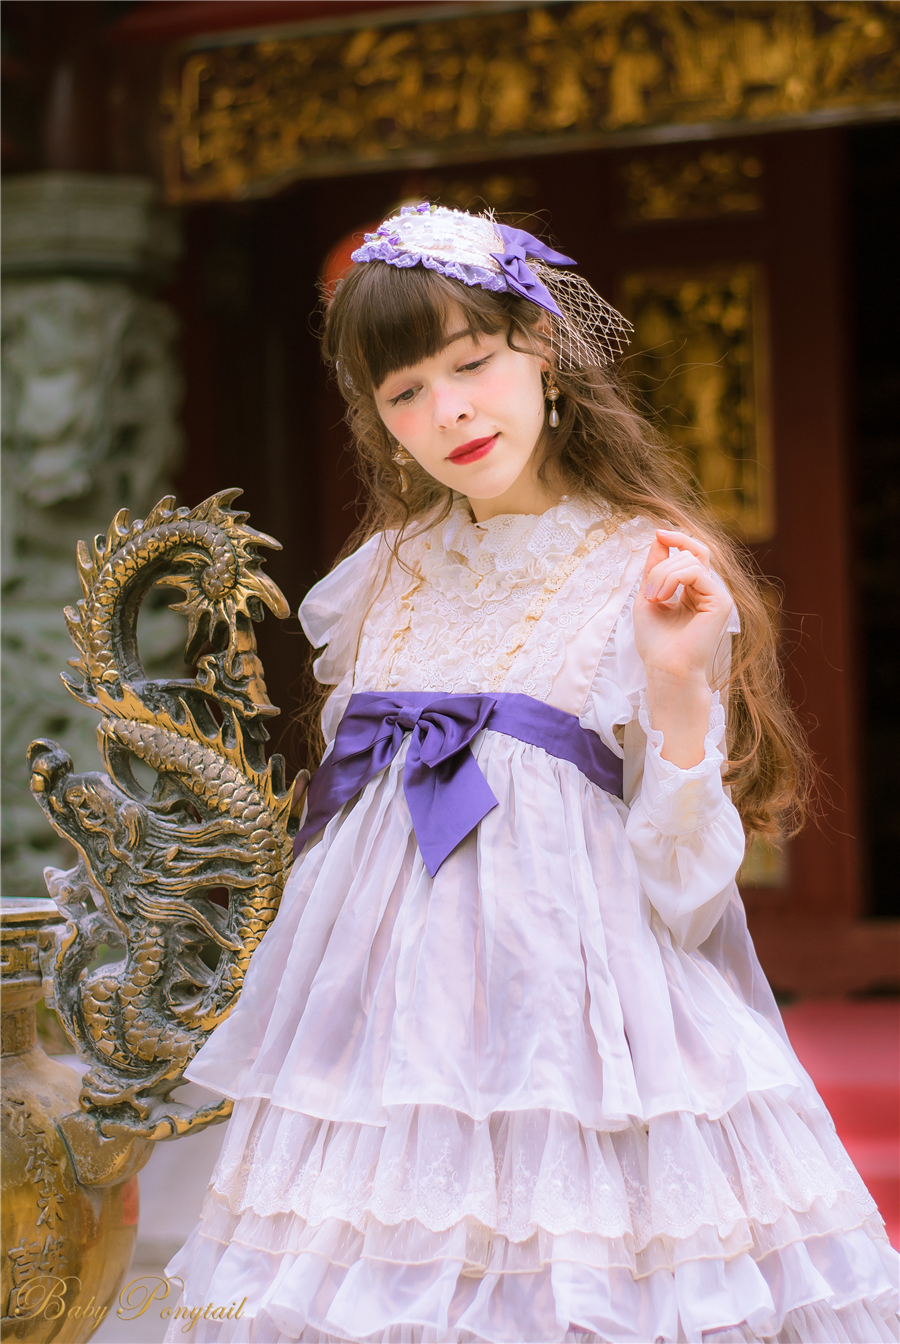 Babyponytail_Model Photo_Present Angel_JSK Violet_1_Claudia_08.jpg